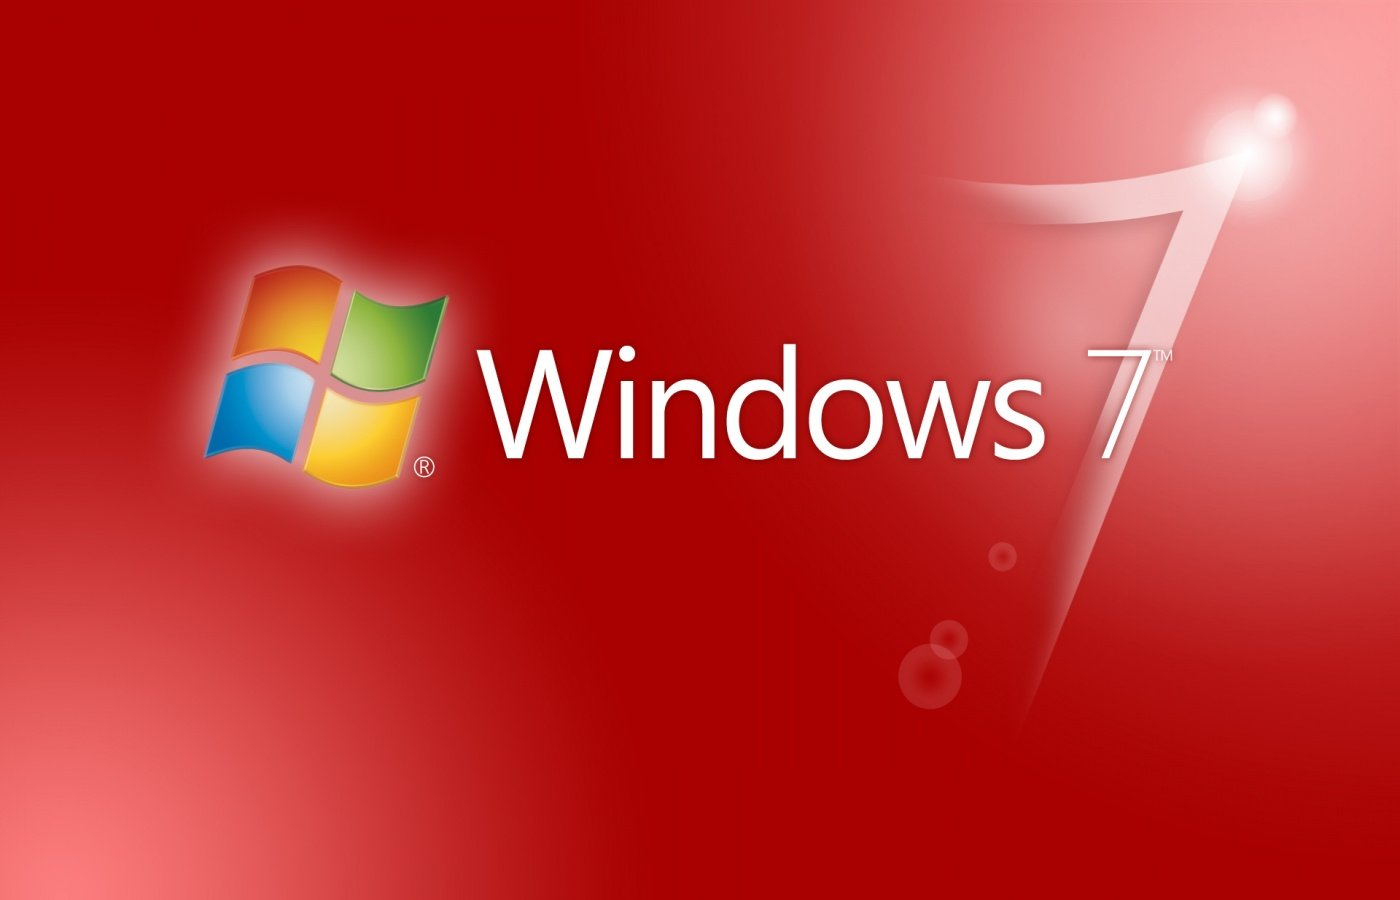 Windows 7 Professional Red Wallpaper - WallpaperSafari